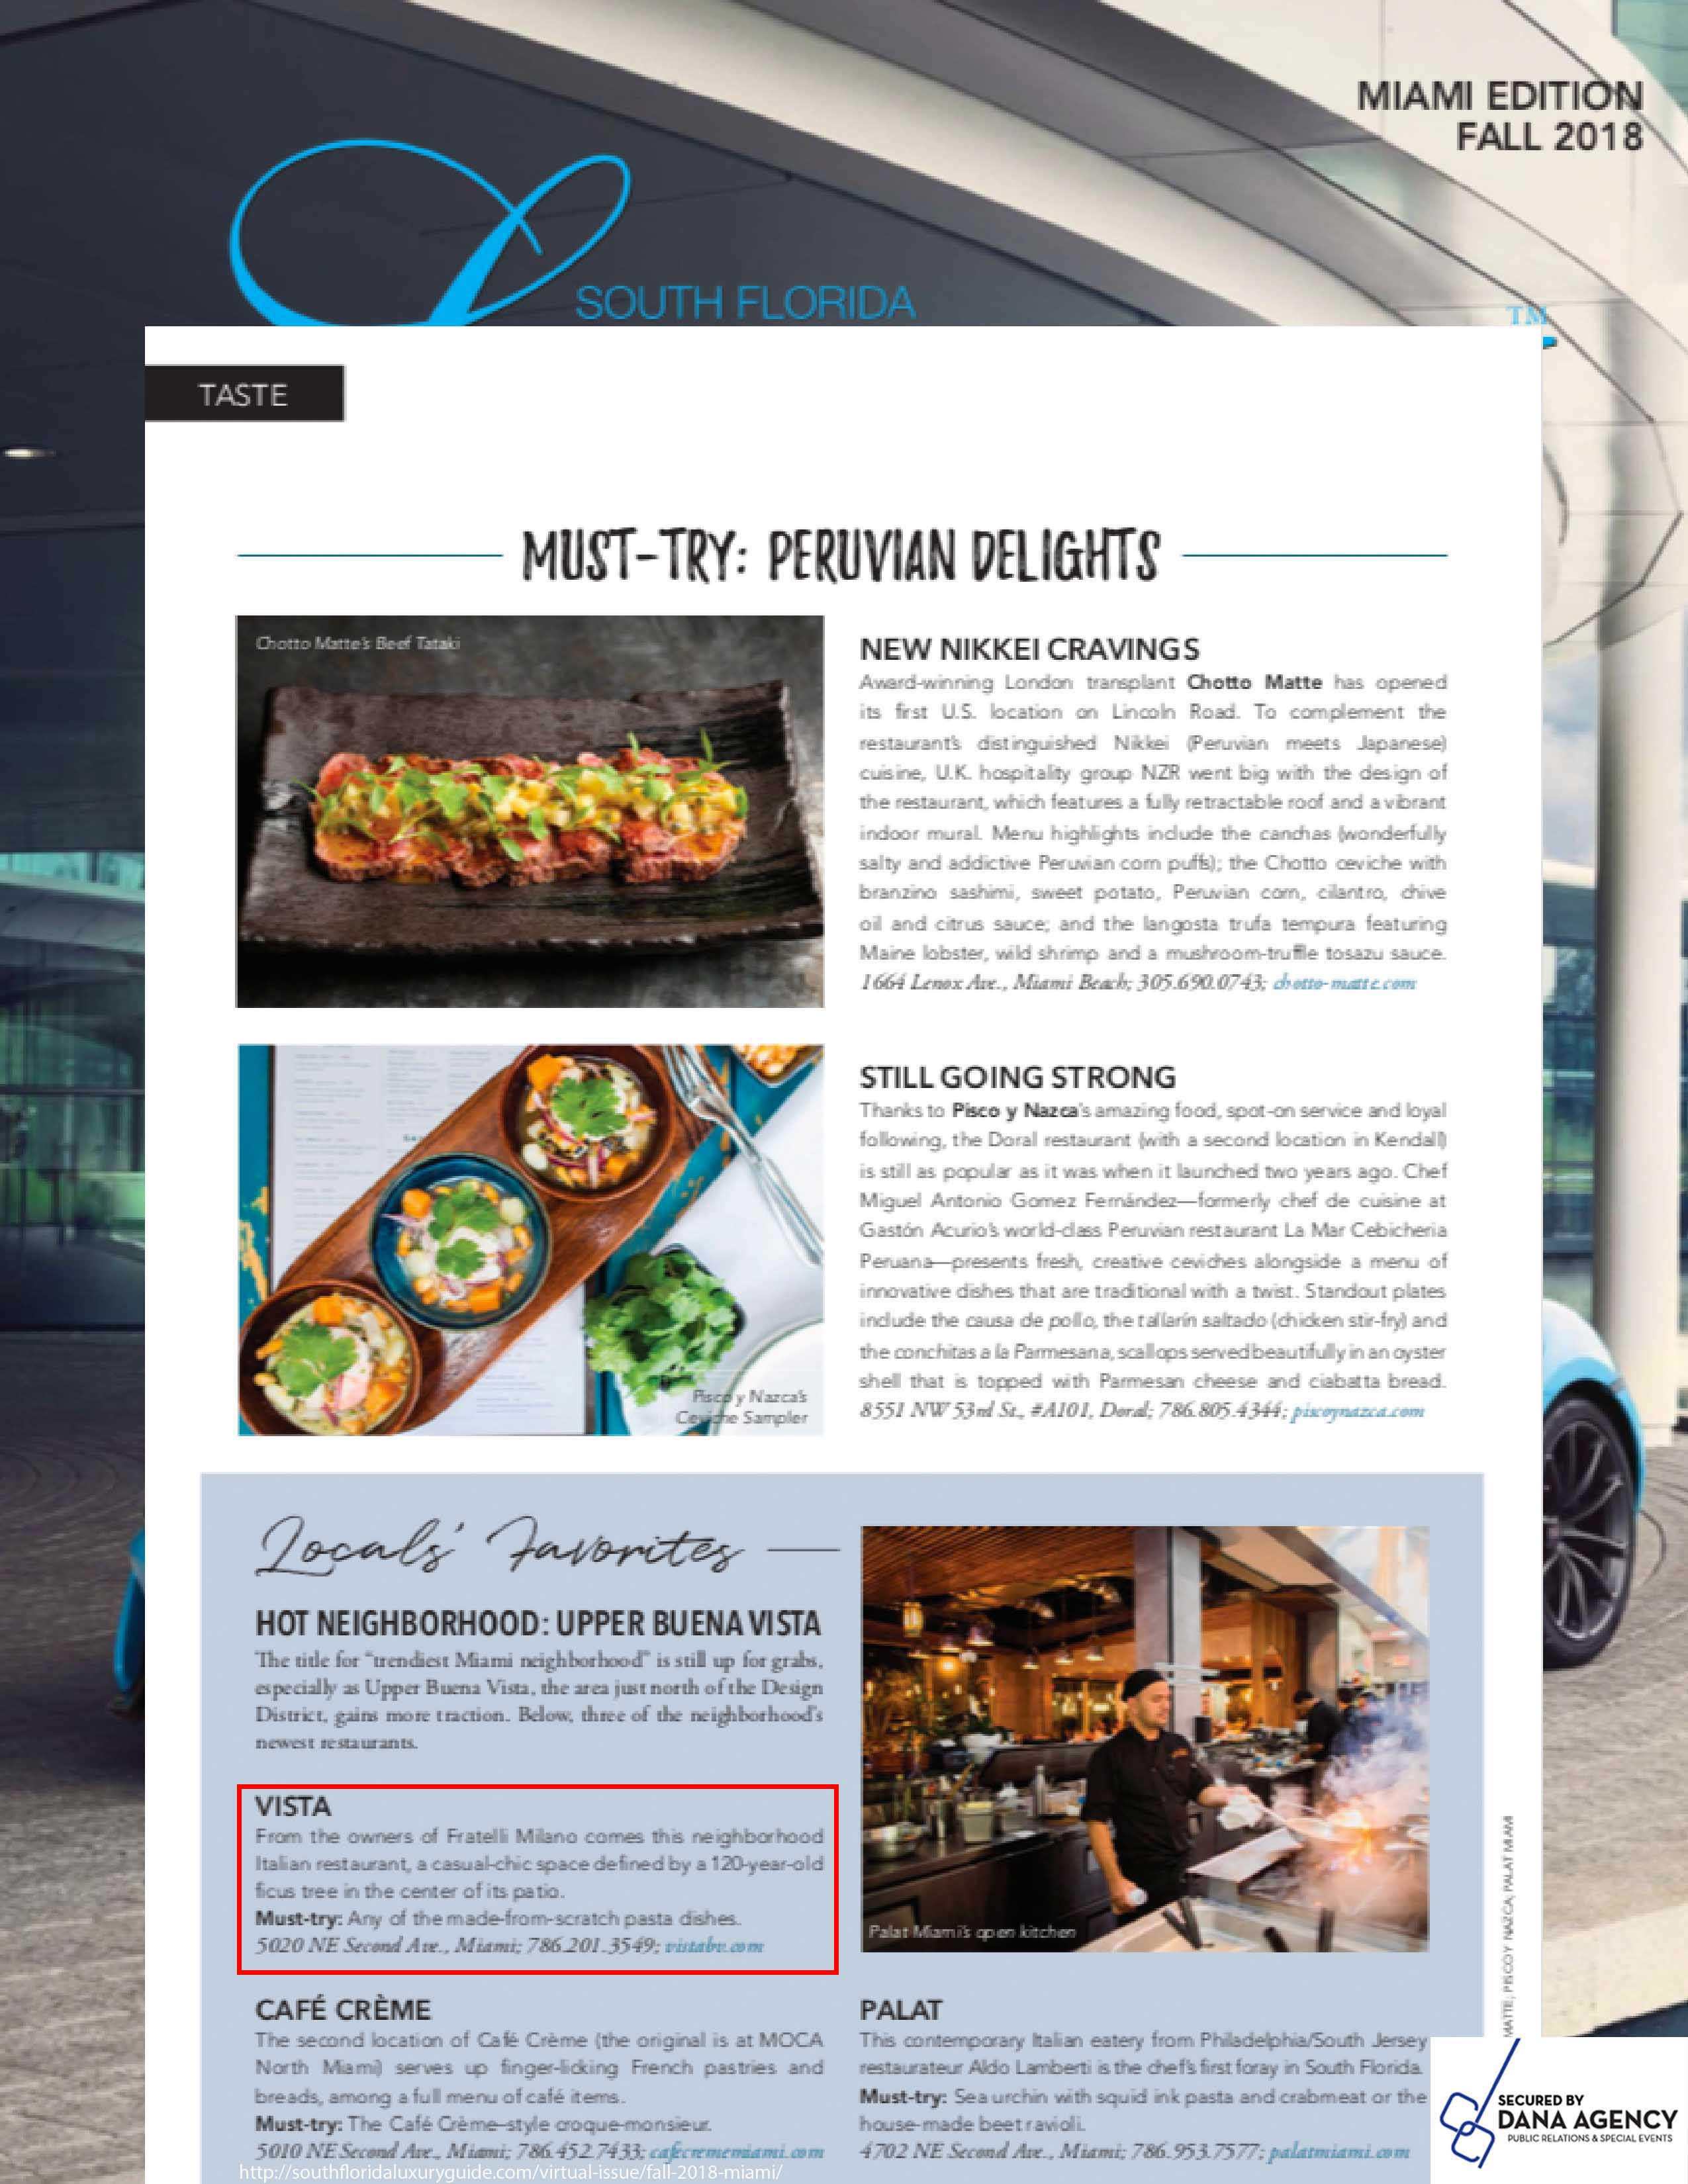 SouthFloridaLuxuryGuide_Fall2018_Online_Page2